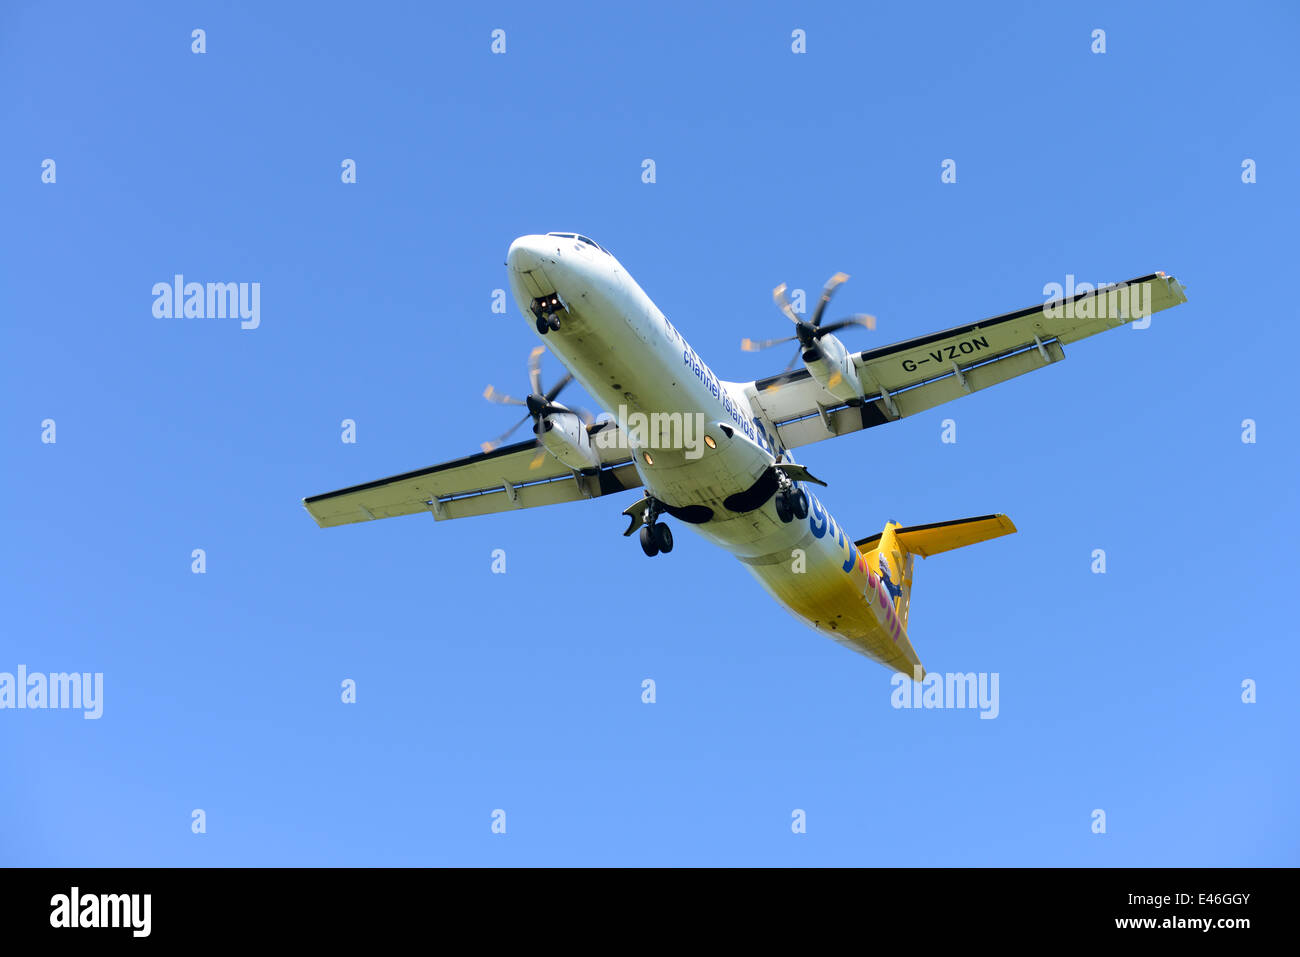 Aurigny airline services aeroplane in flight over Guernsey - Stock Image